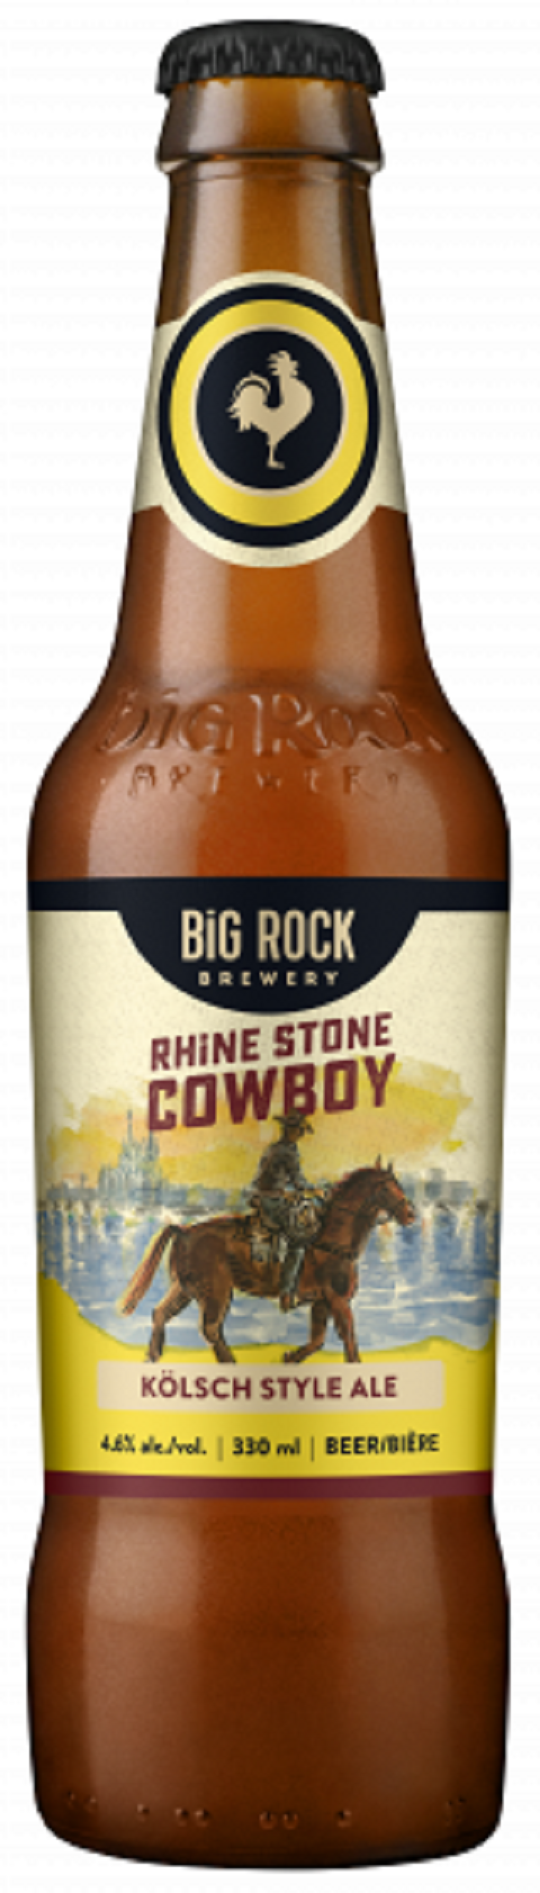 Big Rock Rhinestone Cowboy